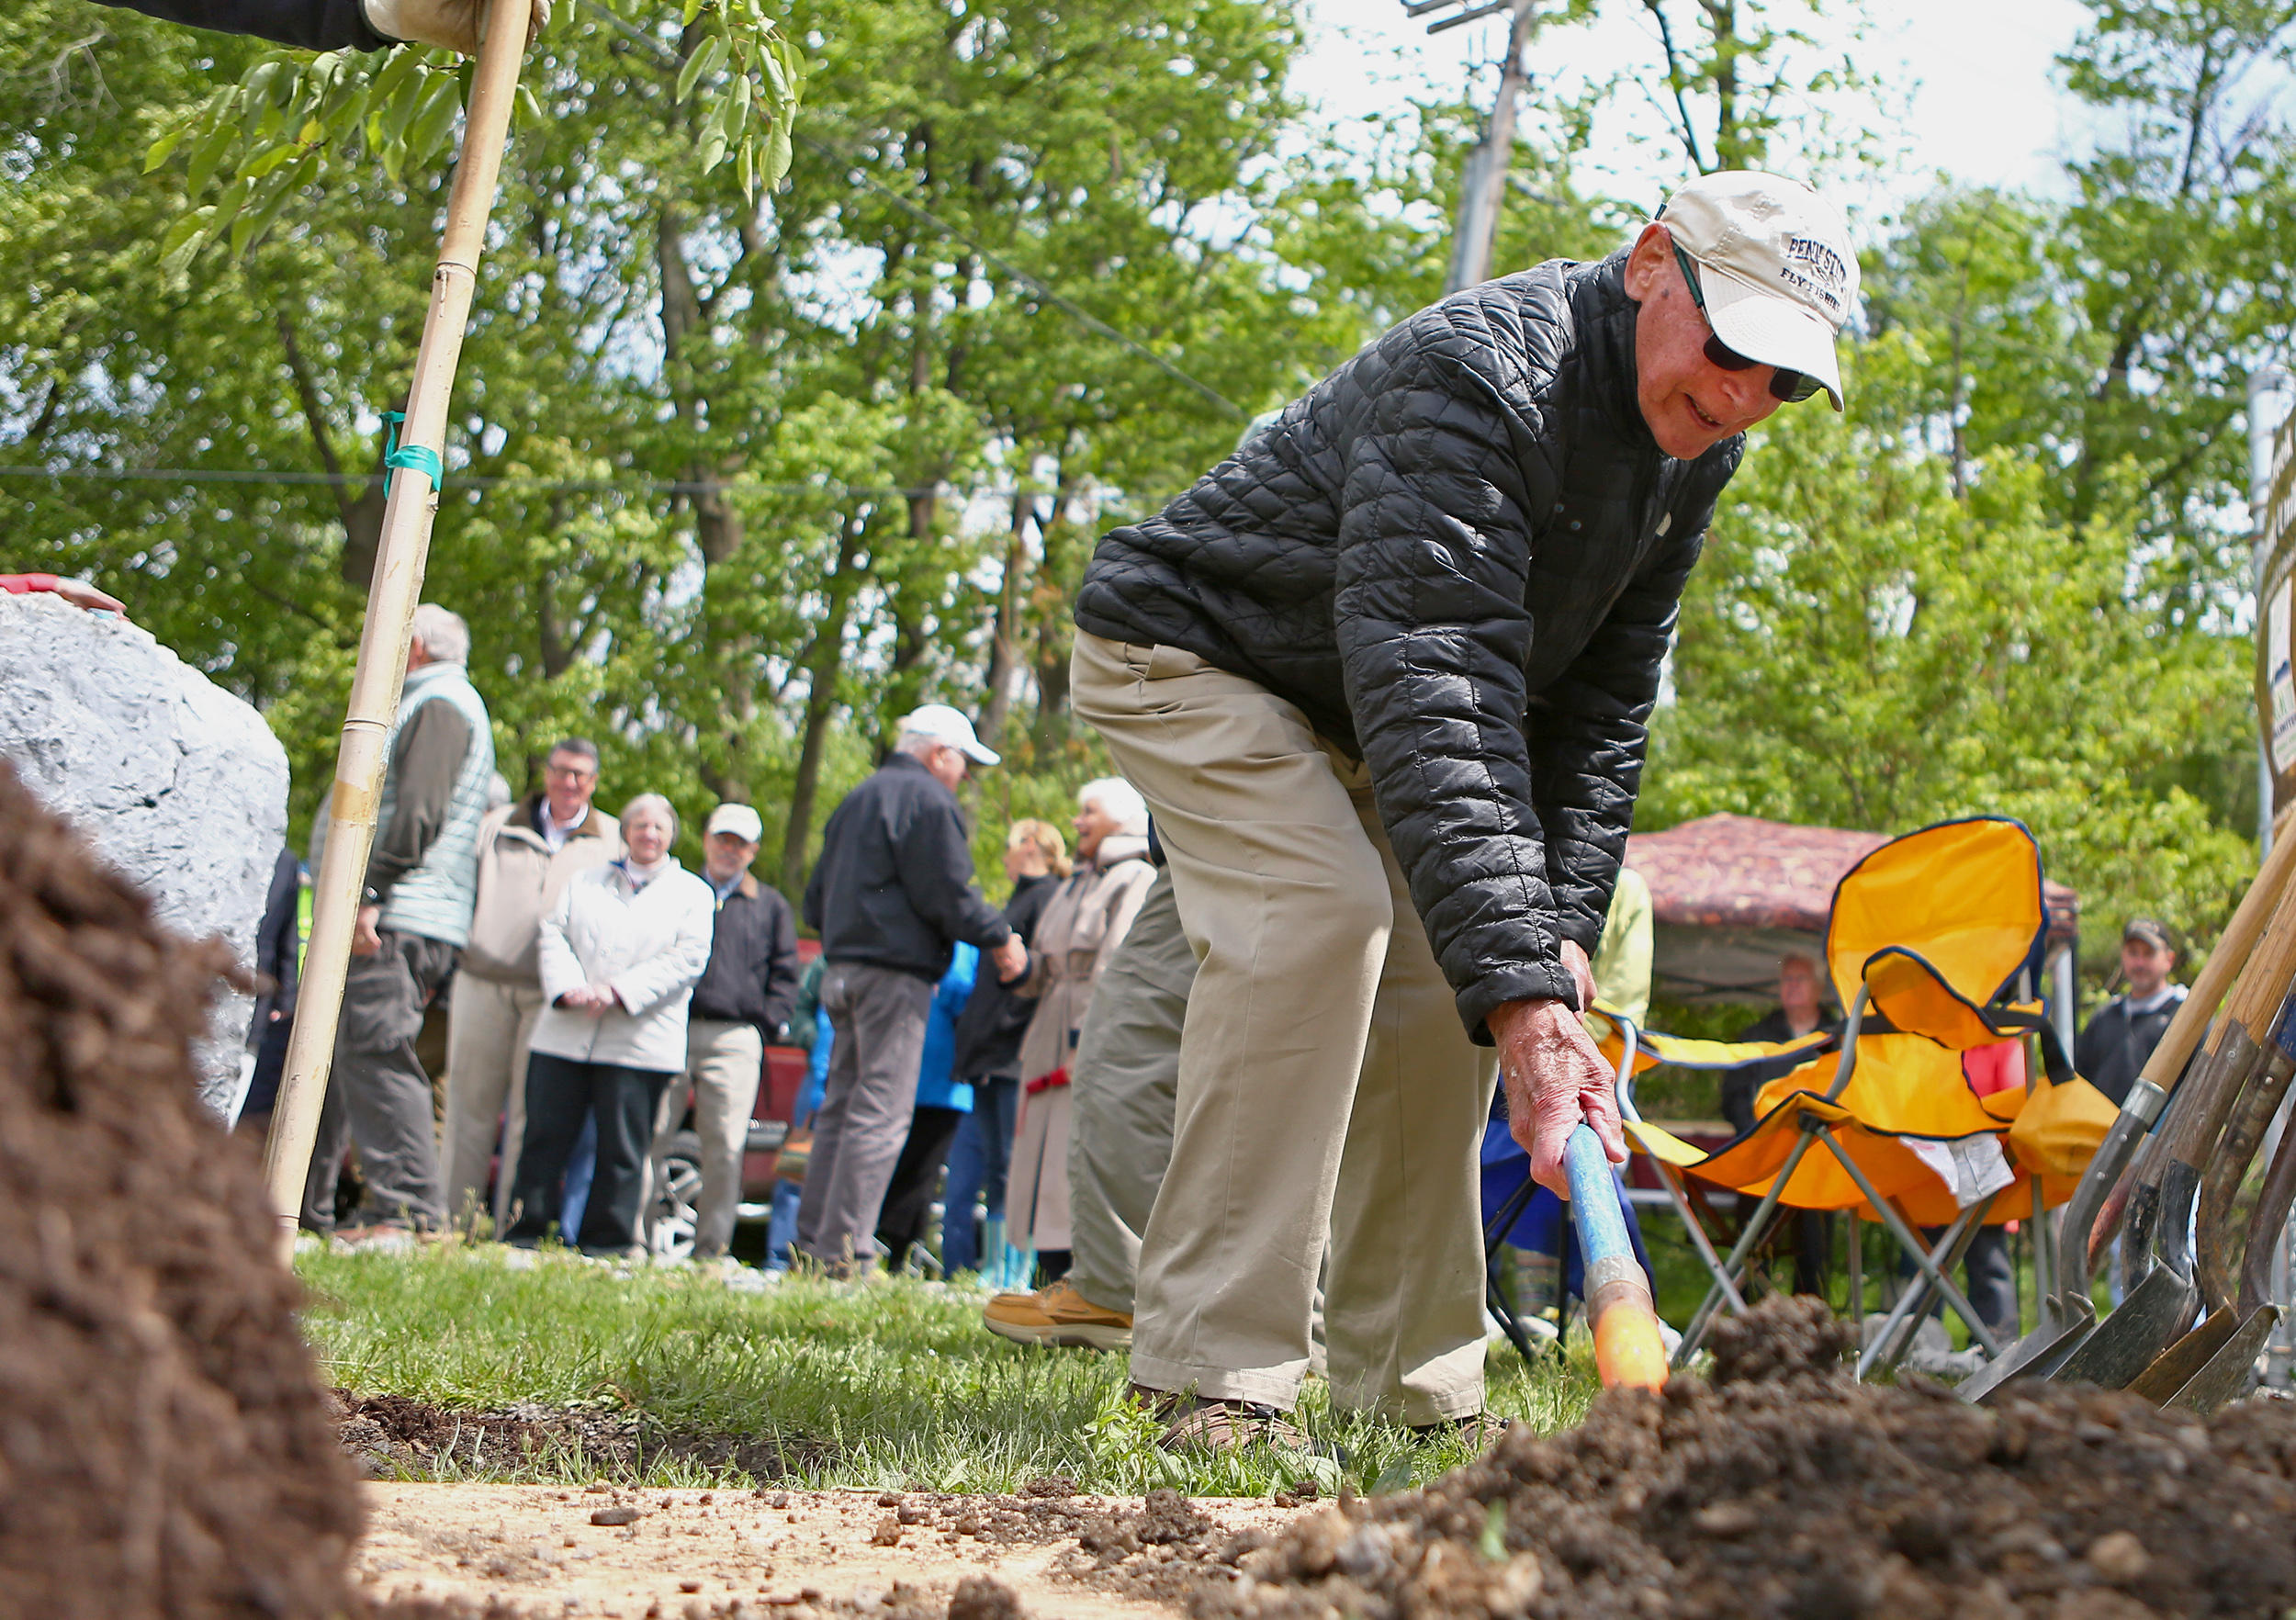 Founder of the Spring Creek chapter of Trout unlimited Joe Humphreys shovels soil onto the tree planted as part of the ceremony recognizing Humphreys and the Trout Unlimited's Thompson Run improvement project at the duck pond located at the intersection of Porter Road and College Avenue on Sunday, May 15, 2016.